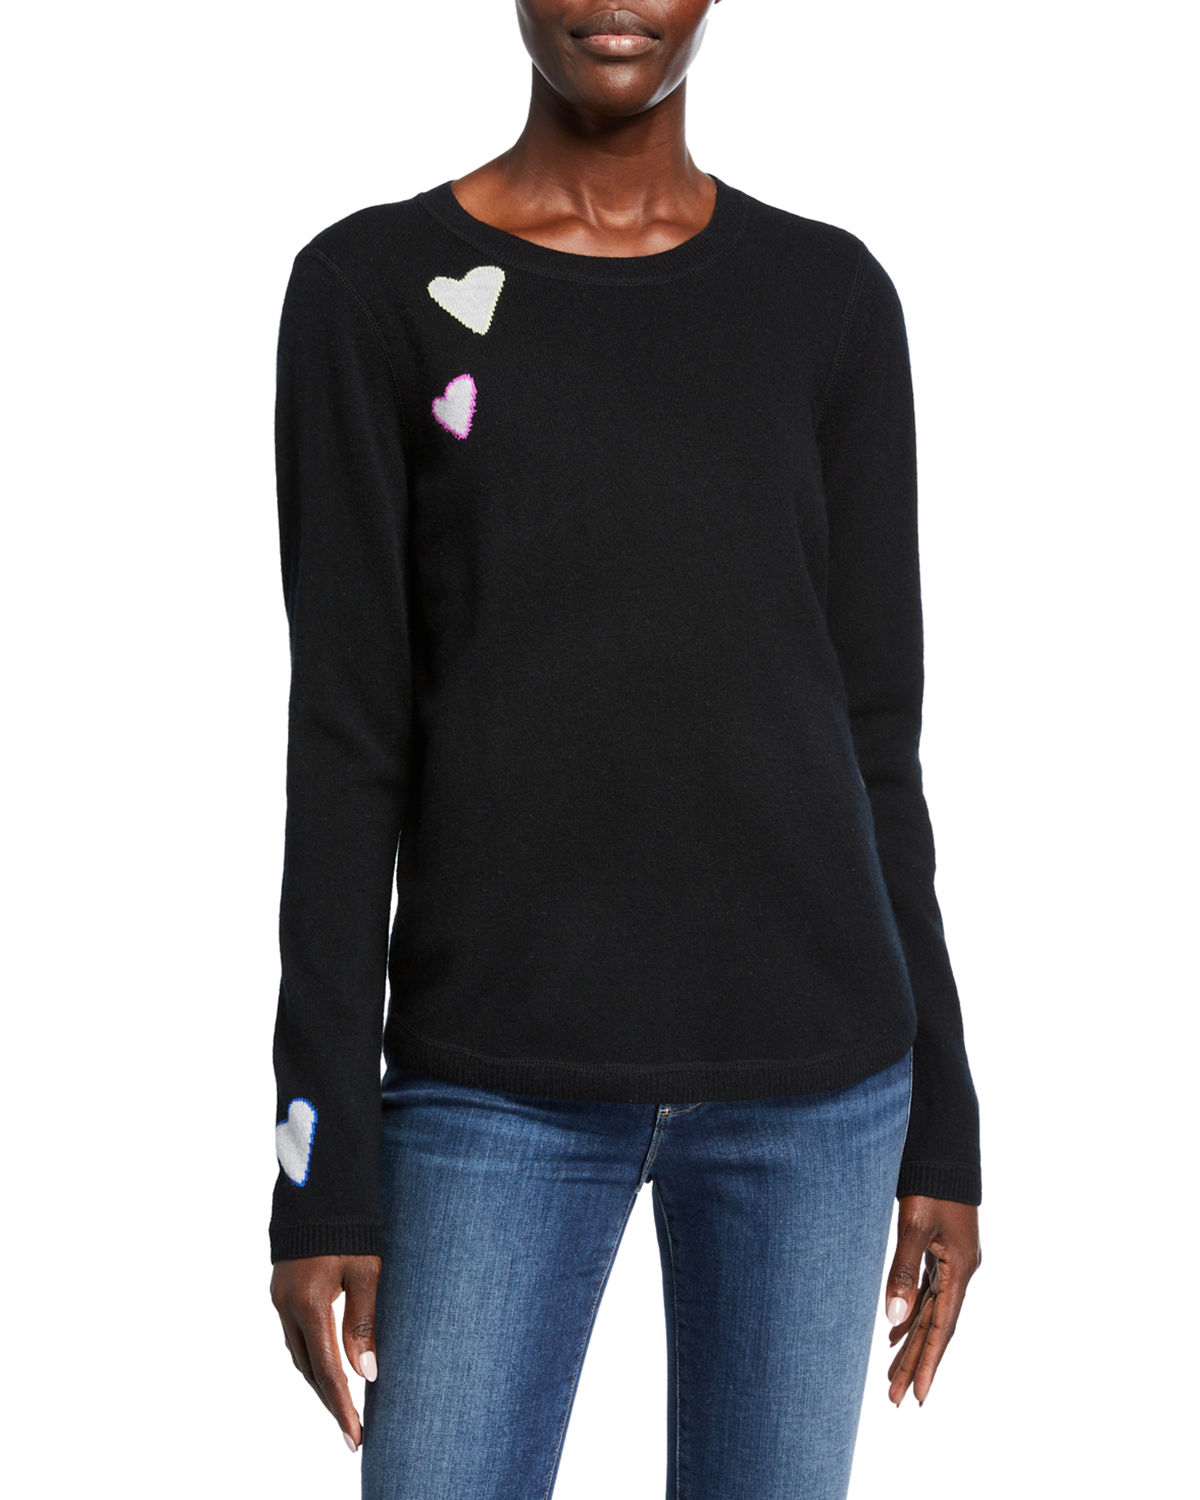 Lisa Todd PLUS SIZE ELECTRICAL FEEL CASHMERE SWEATER